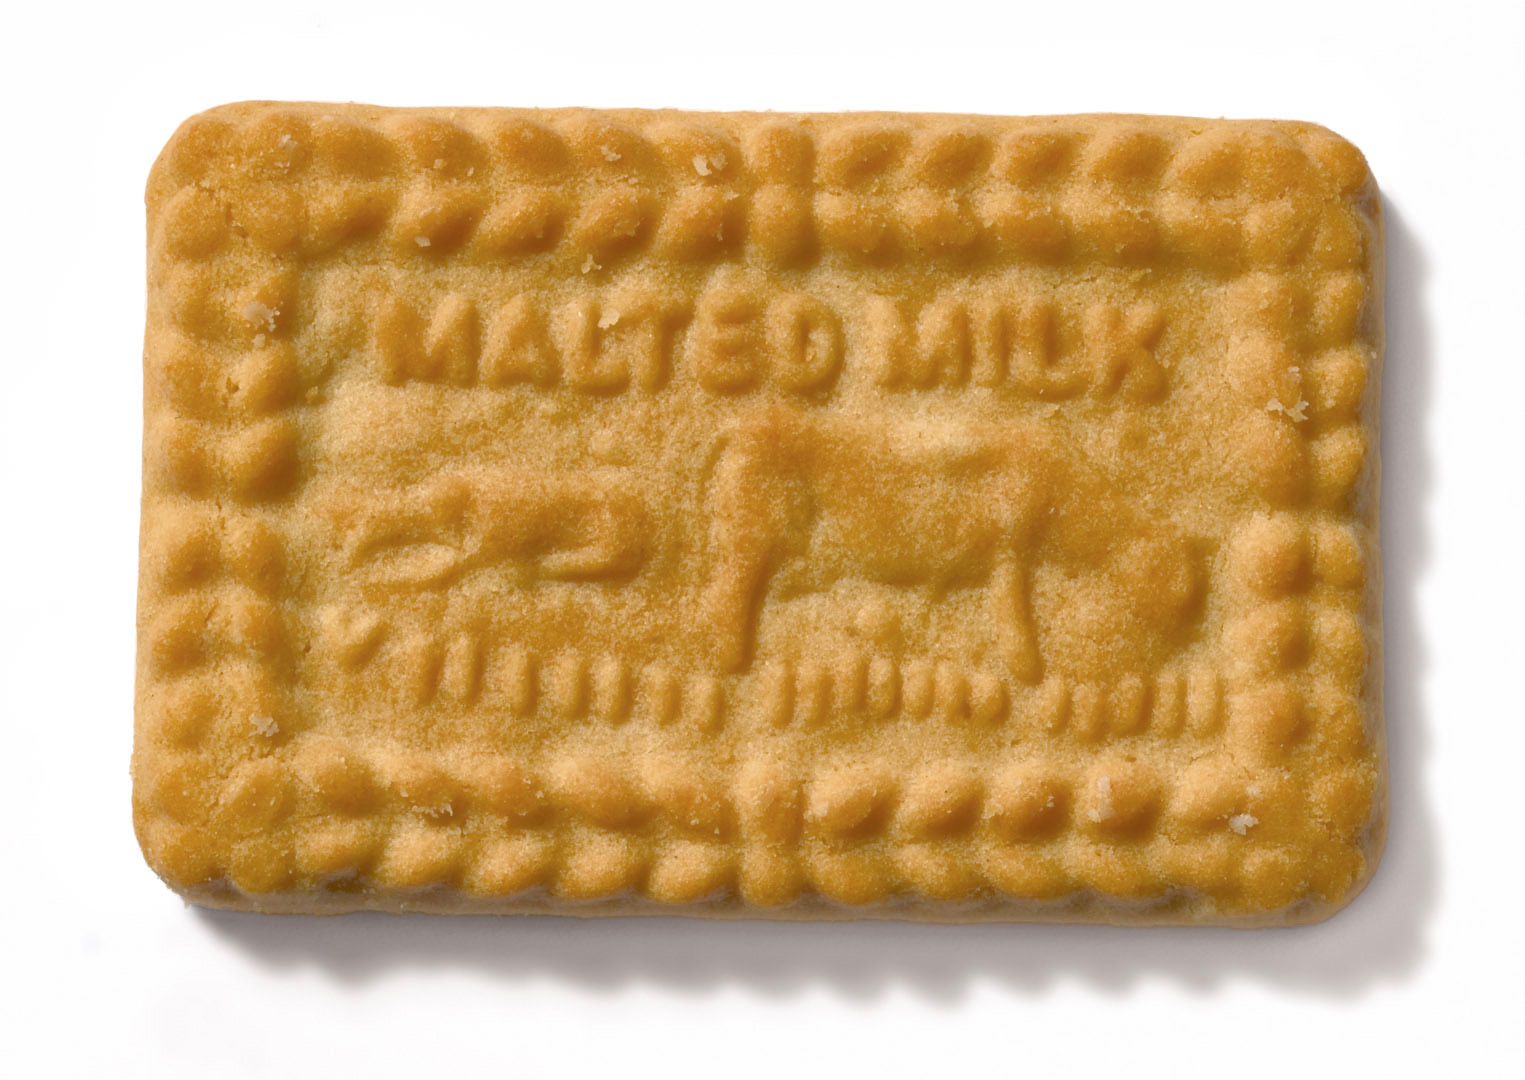 File:Malted Milk biscuit.jpg - Wikipedia